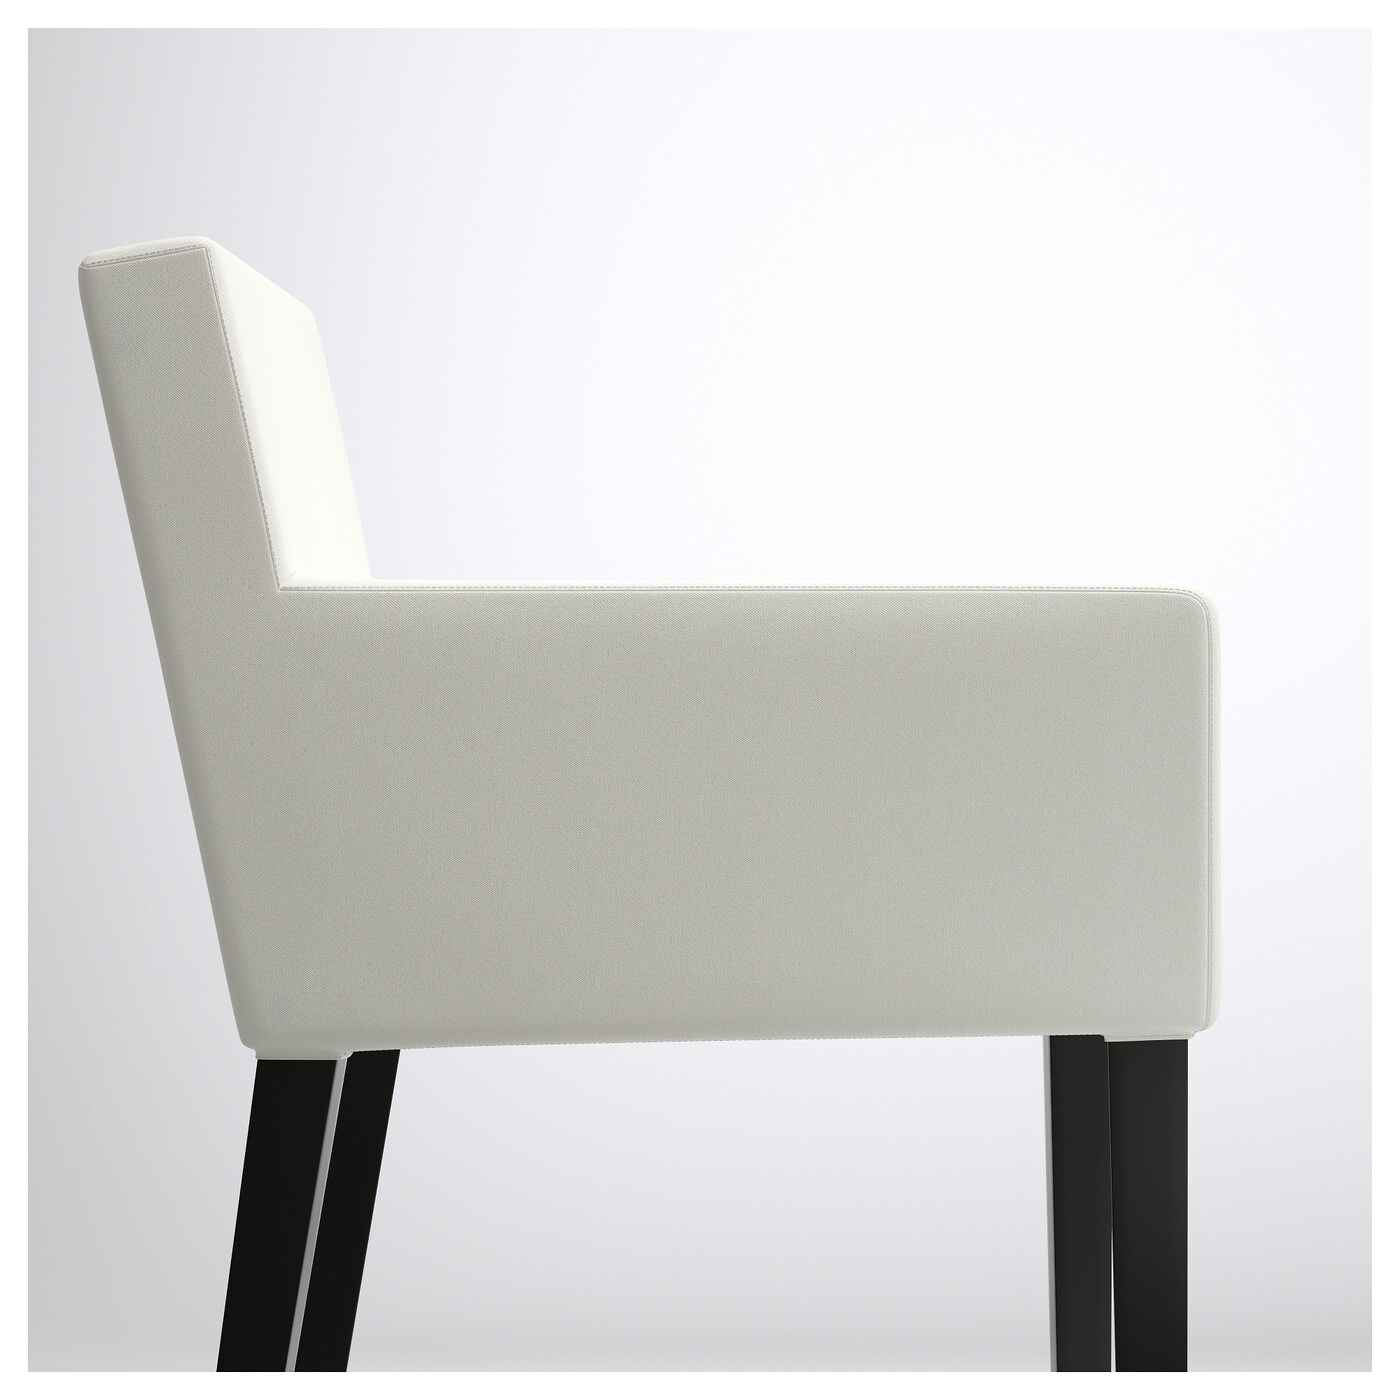 nils chair cover outdoor expressions zero gravity relaxer convertible lounge with armrests black blekinge white ikea